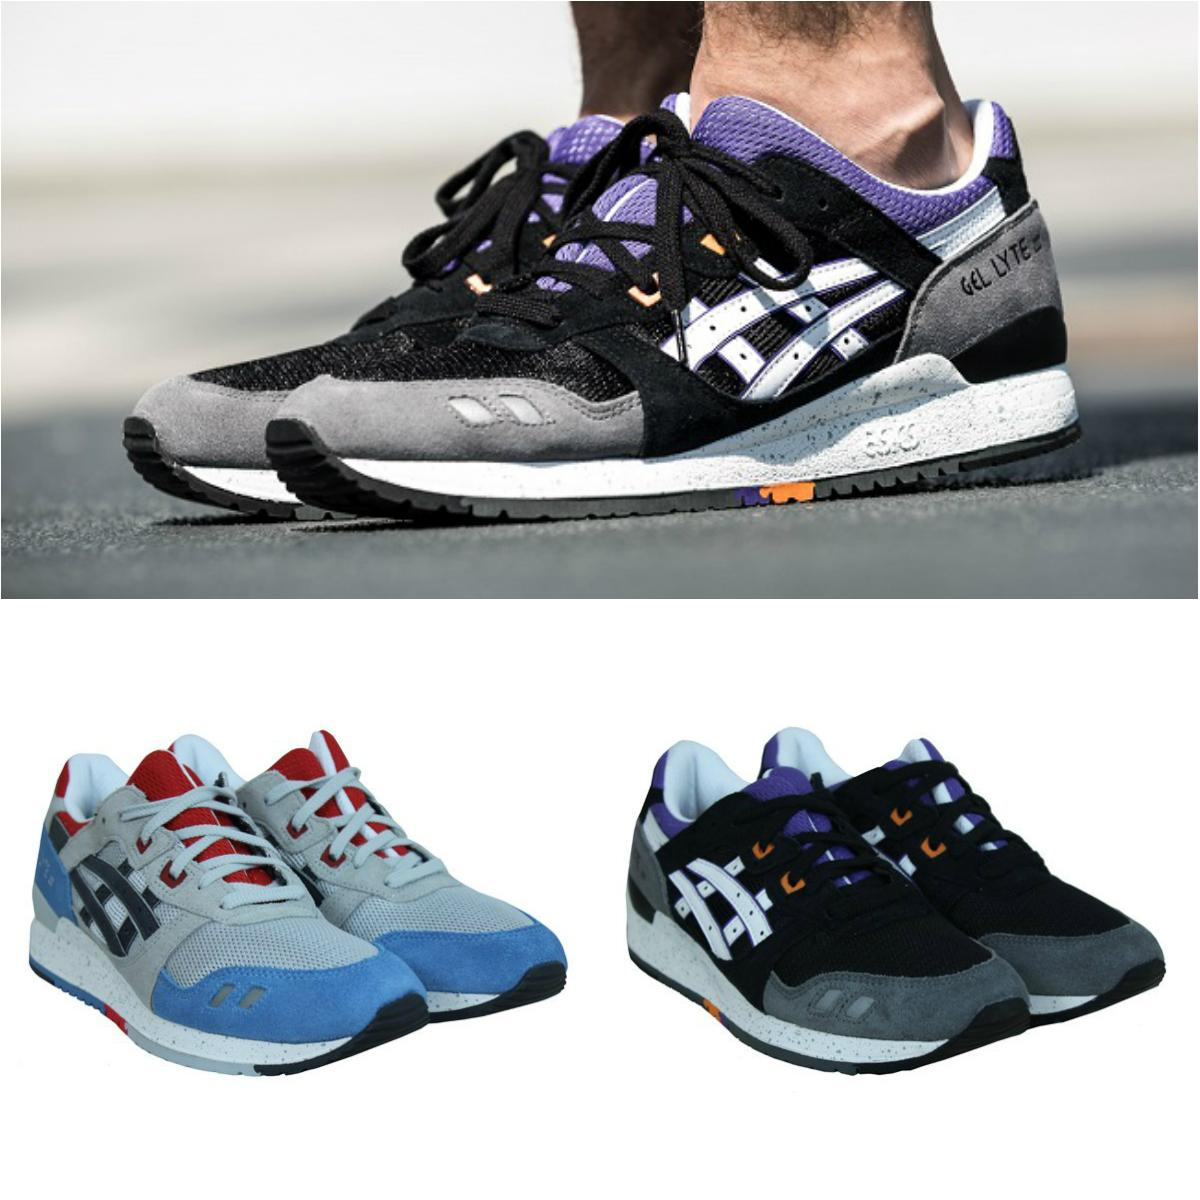 We're giving away a pair of Asics Gel Lyte III worth £95! http://t.co/ezAEBNgTFC #win http://t.co/snj6hcTVxa